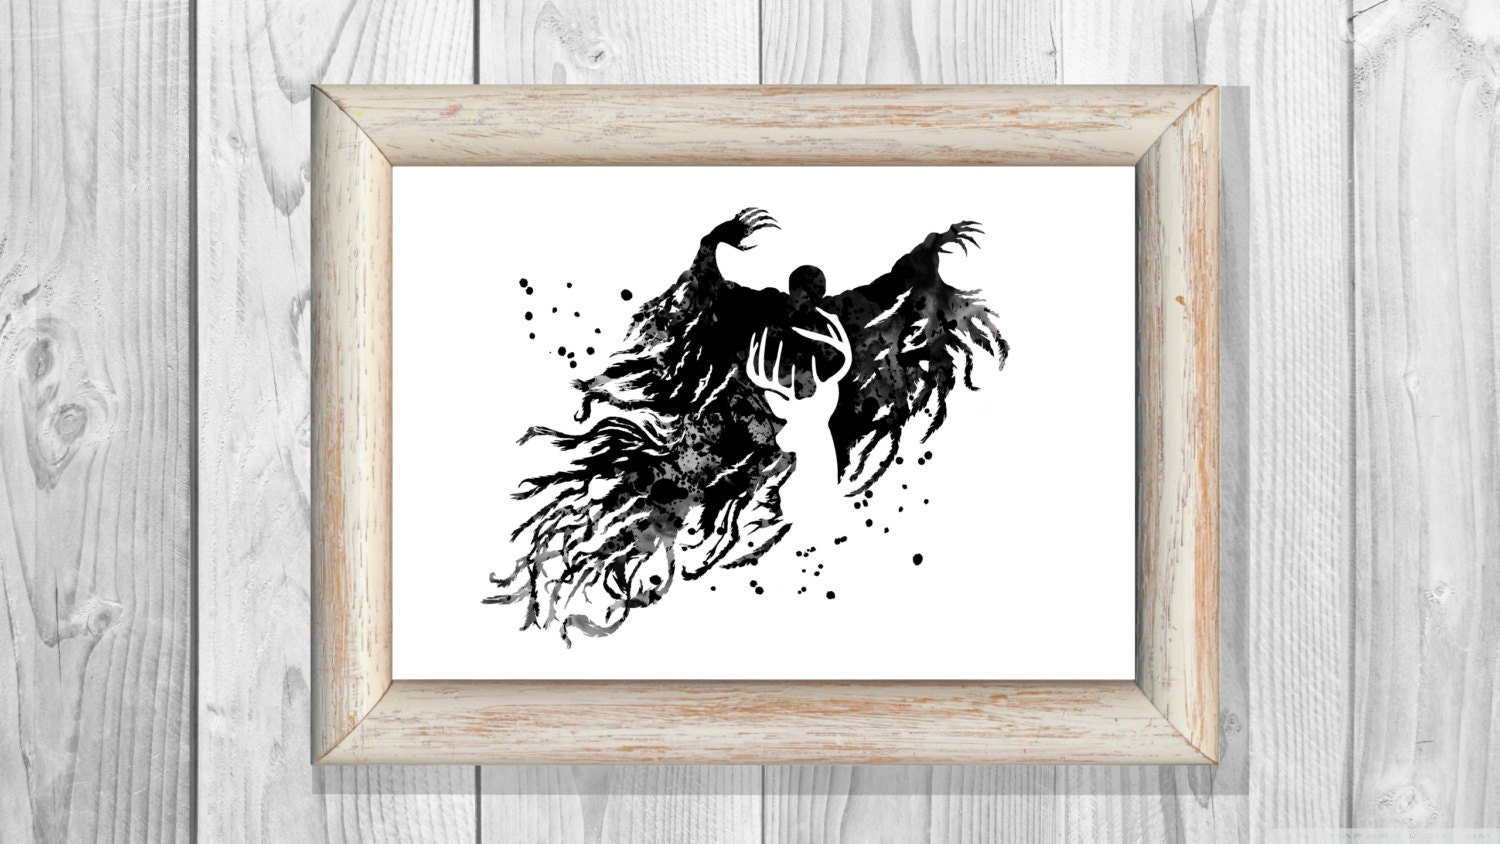 Art harry potter poster harry potter wall art 479 office decor - Harry Potter Poster Dementor Poster Harry Potter Watercolor